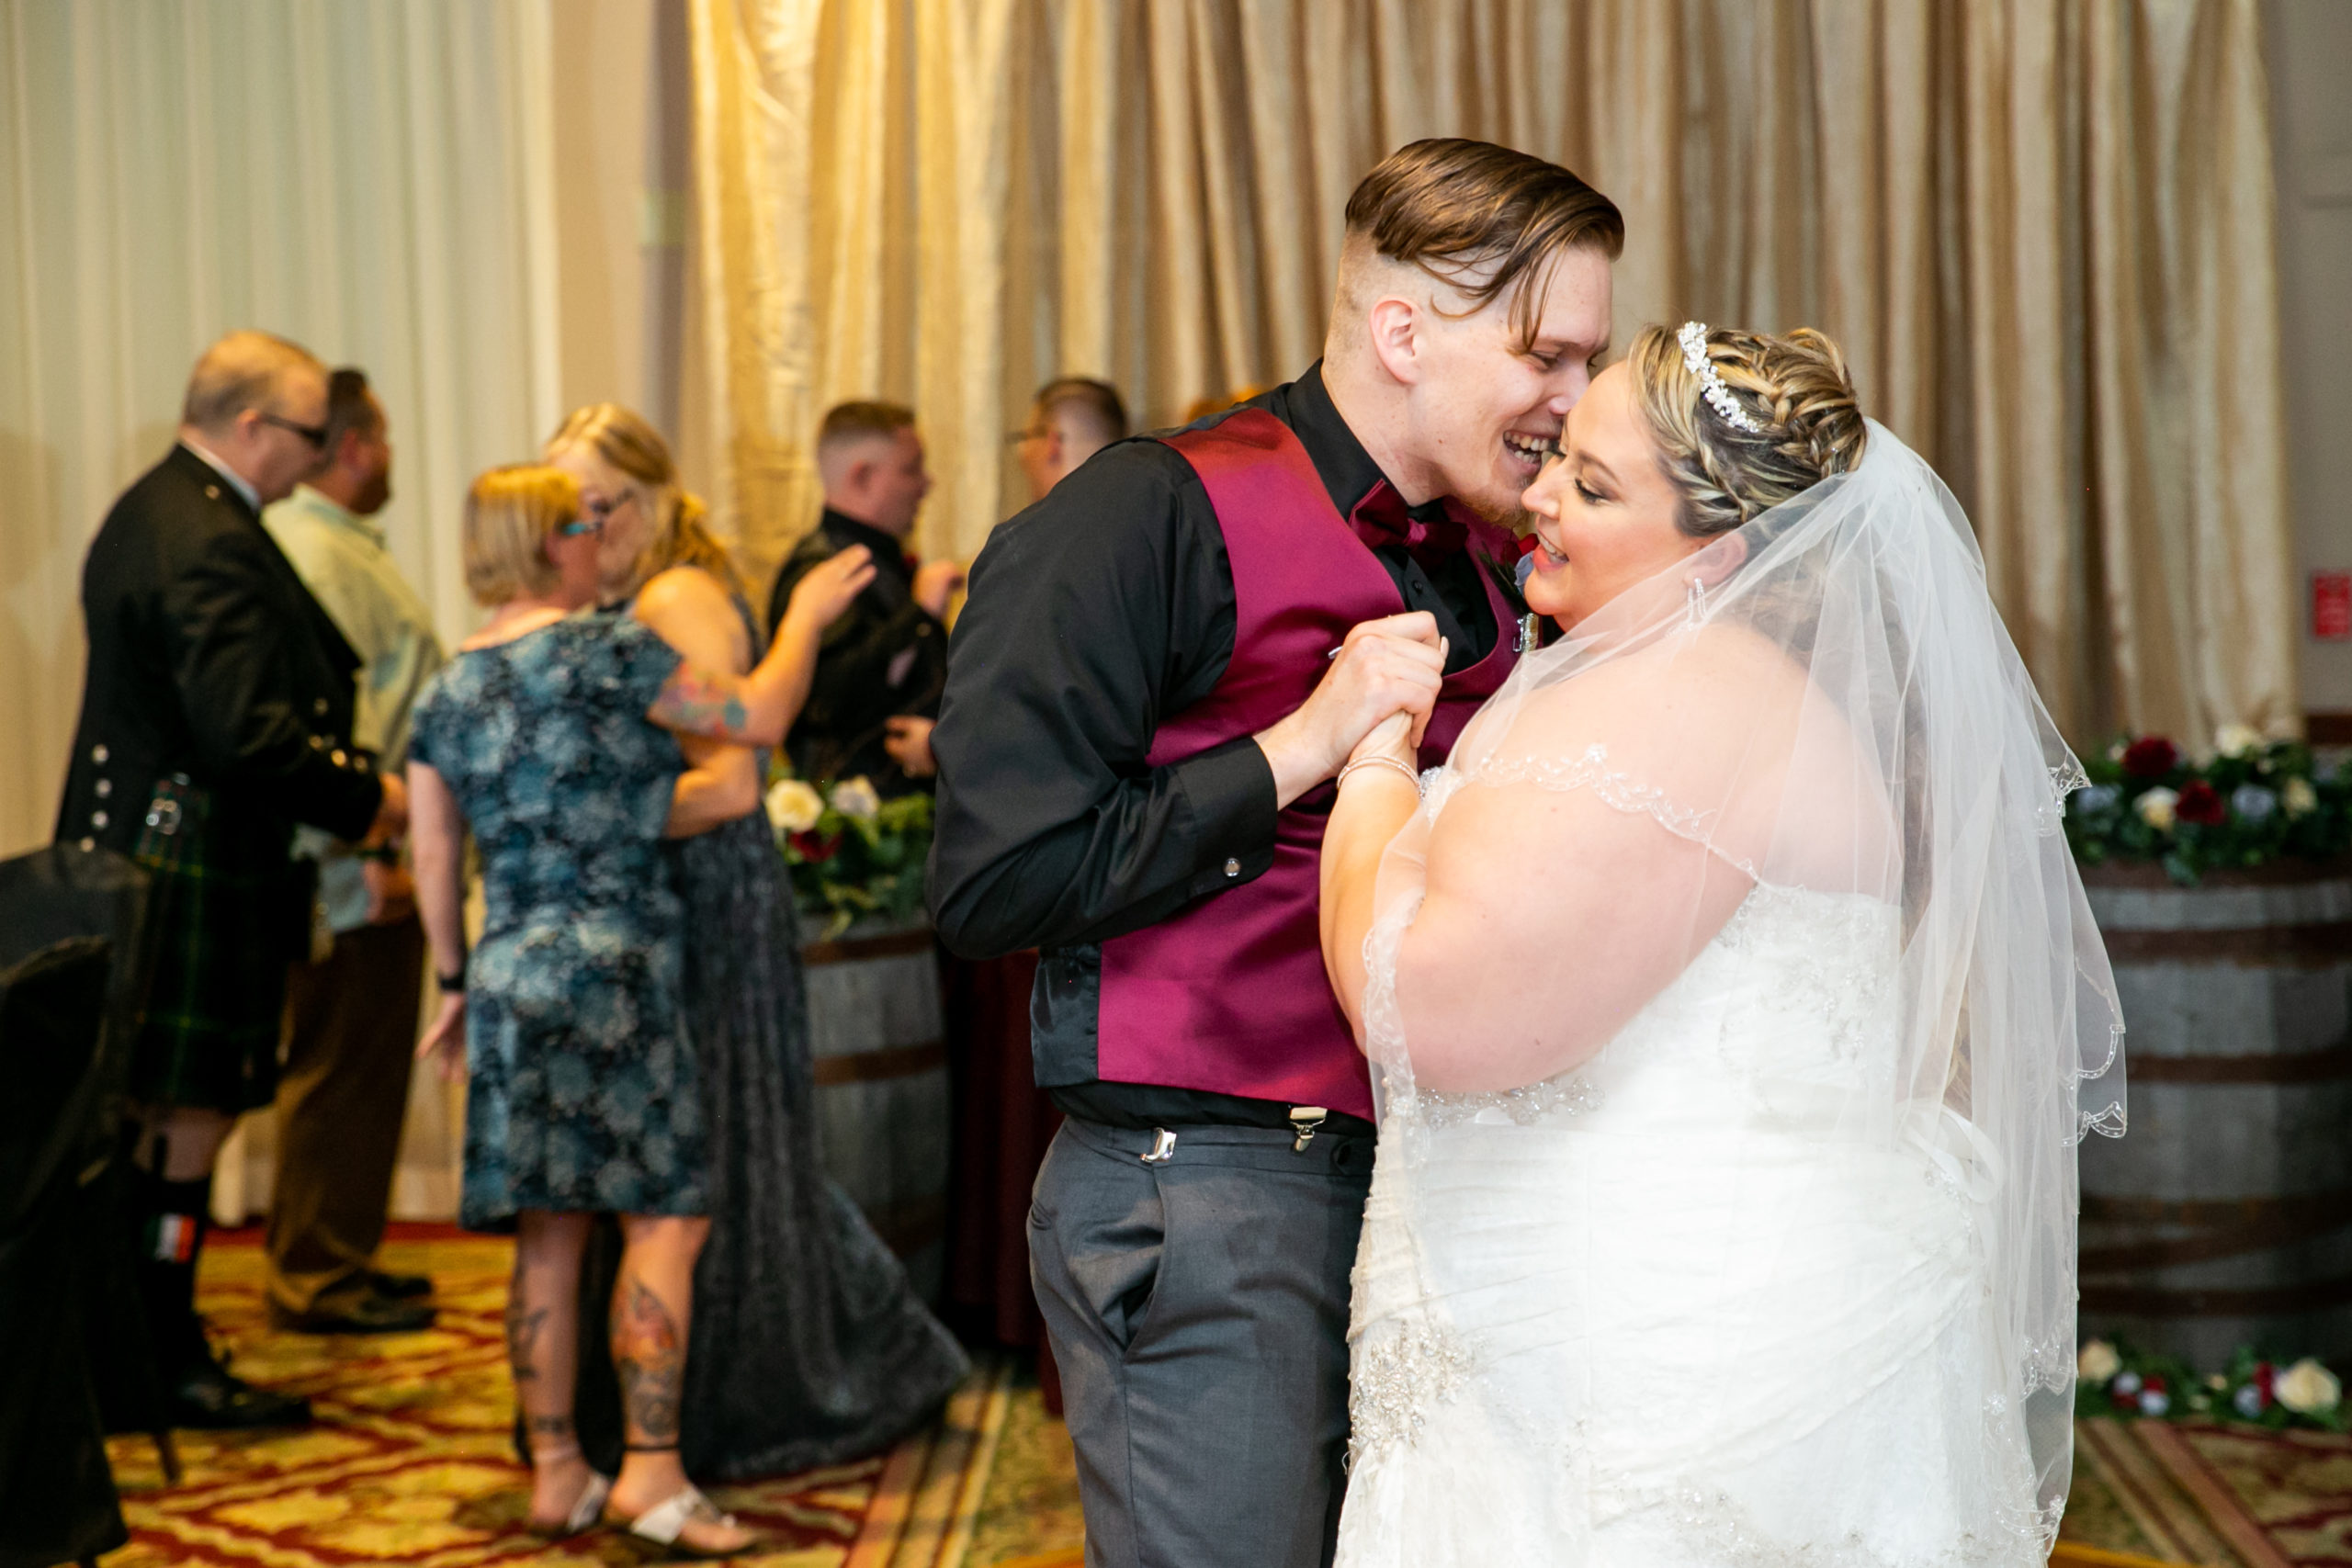 brides dance with brother in law